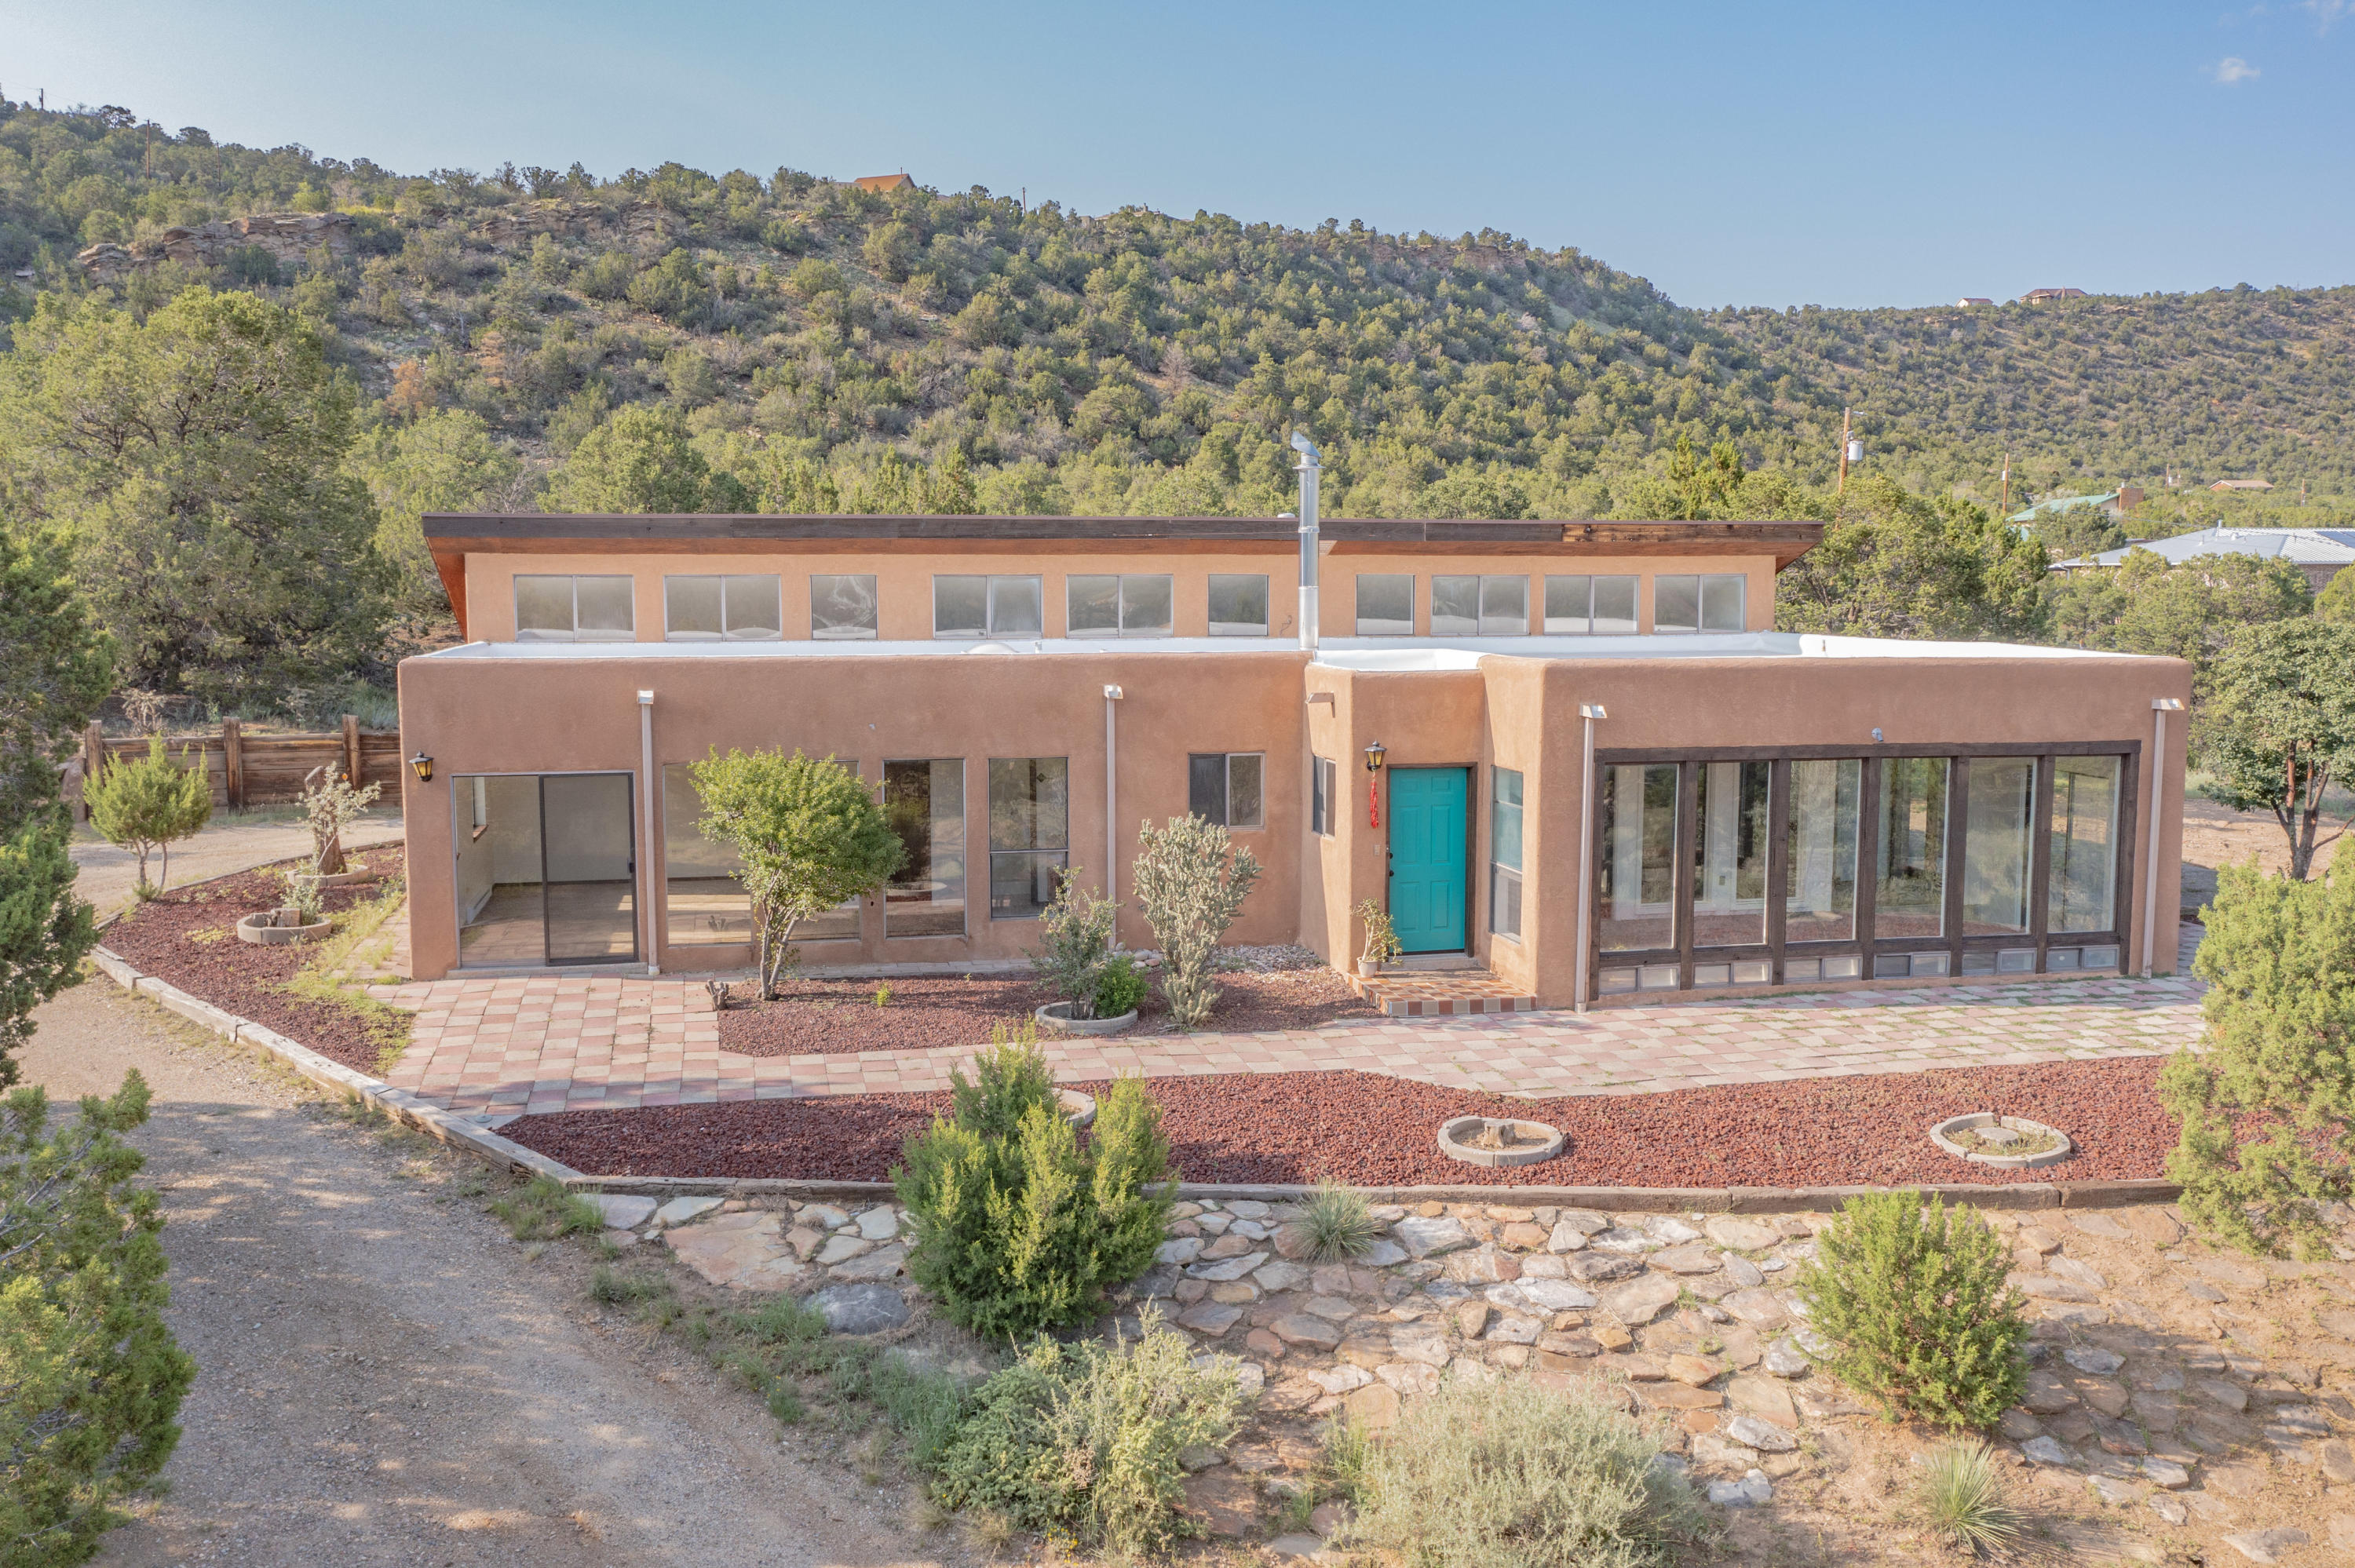 Windows, light, views! This 3-bed, 2-bath home has been built to maximize it's 3 acres with incredible views, both inside and out. Step inside the kitchen featuring solid wood cabinets, full bar/peninsula, flowing and open floor plan into the dining room/living room/family room. Natural light abounds from the copious clerestory windows and floor to ceiling picture windows from which to take in the mountain views. Another full wall of floor to ceiling picture windows rounds out the owner's suite complete with private patio access and full ensuite bathroom. Even the 800+ sq ft garage/workshop is filled with natural light from a plethora of skylights. All this tucked into a quiet mountain neighborhood and still only 15 minutes from all the Albuquerque amenities.